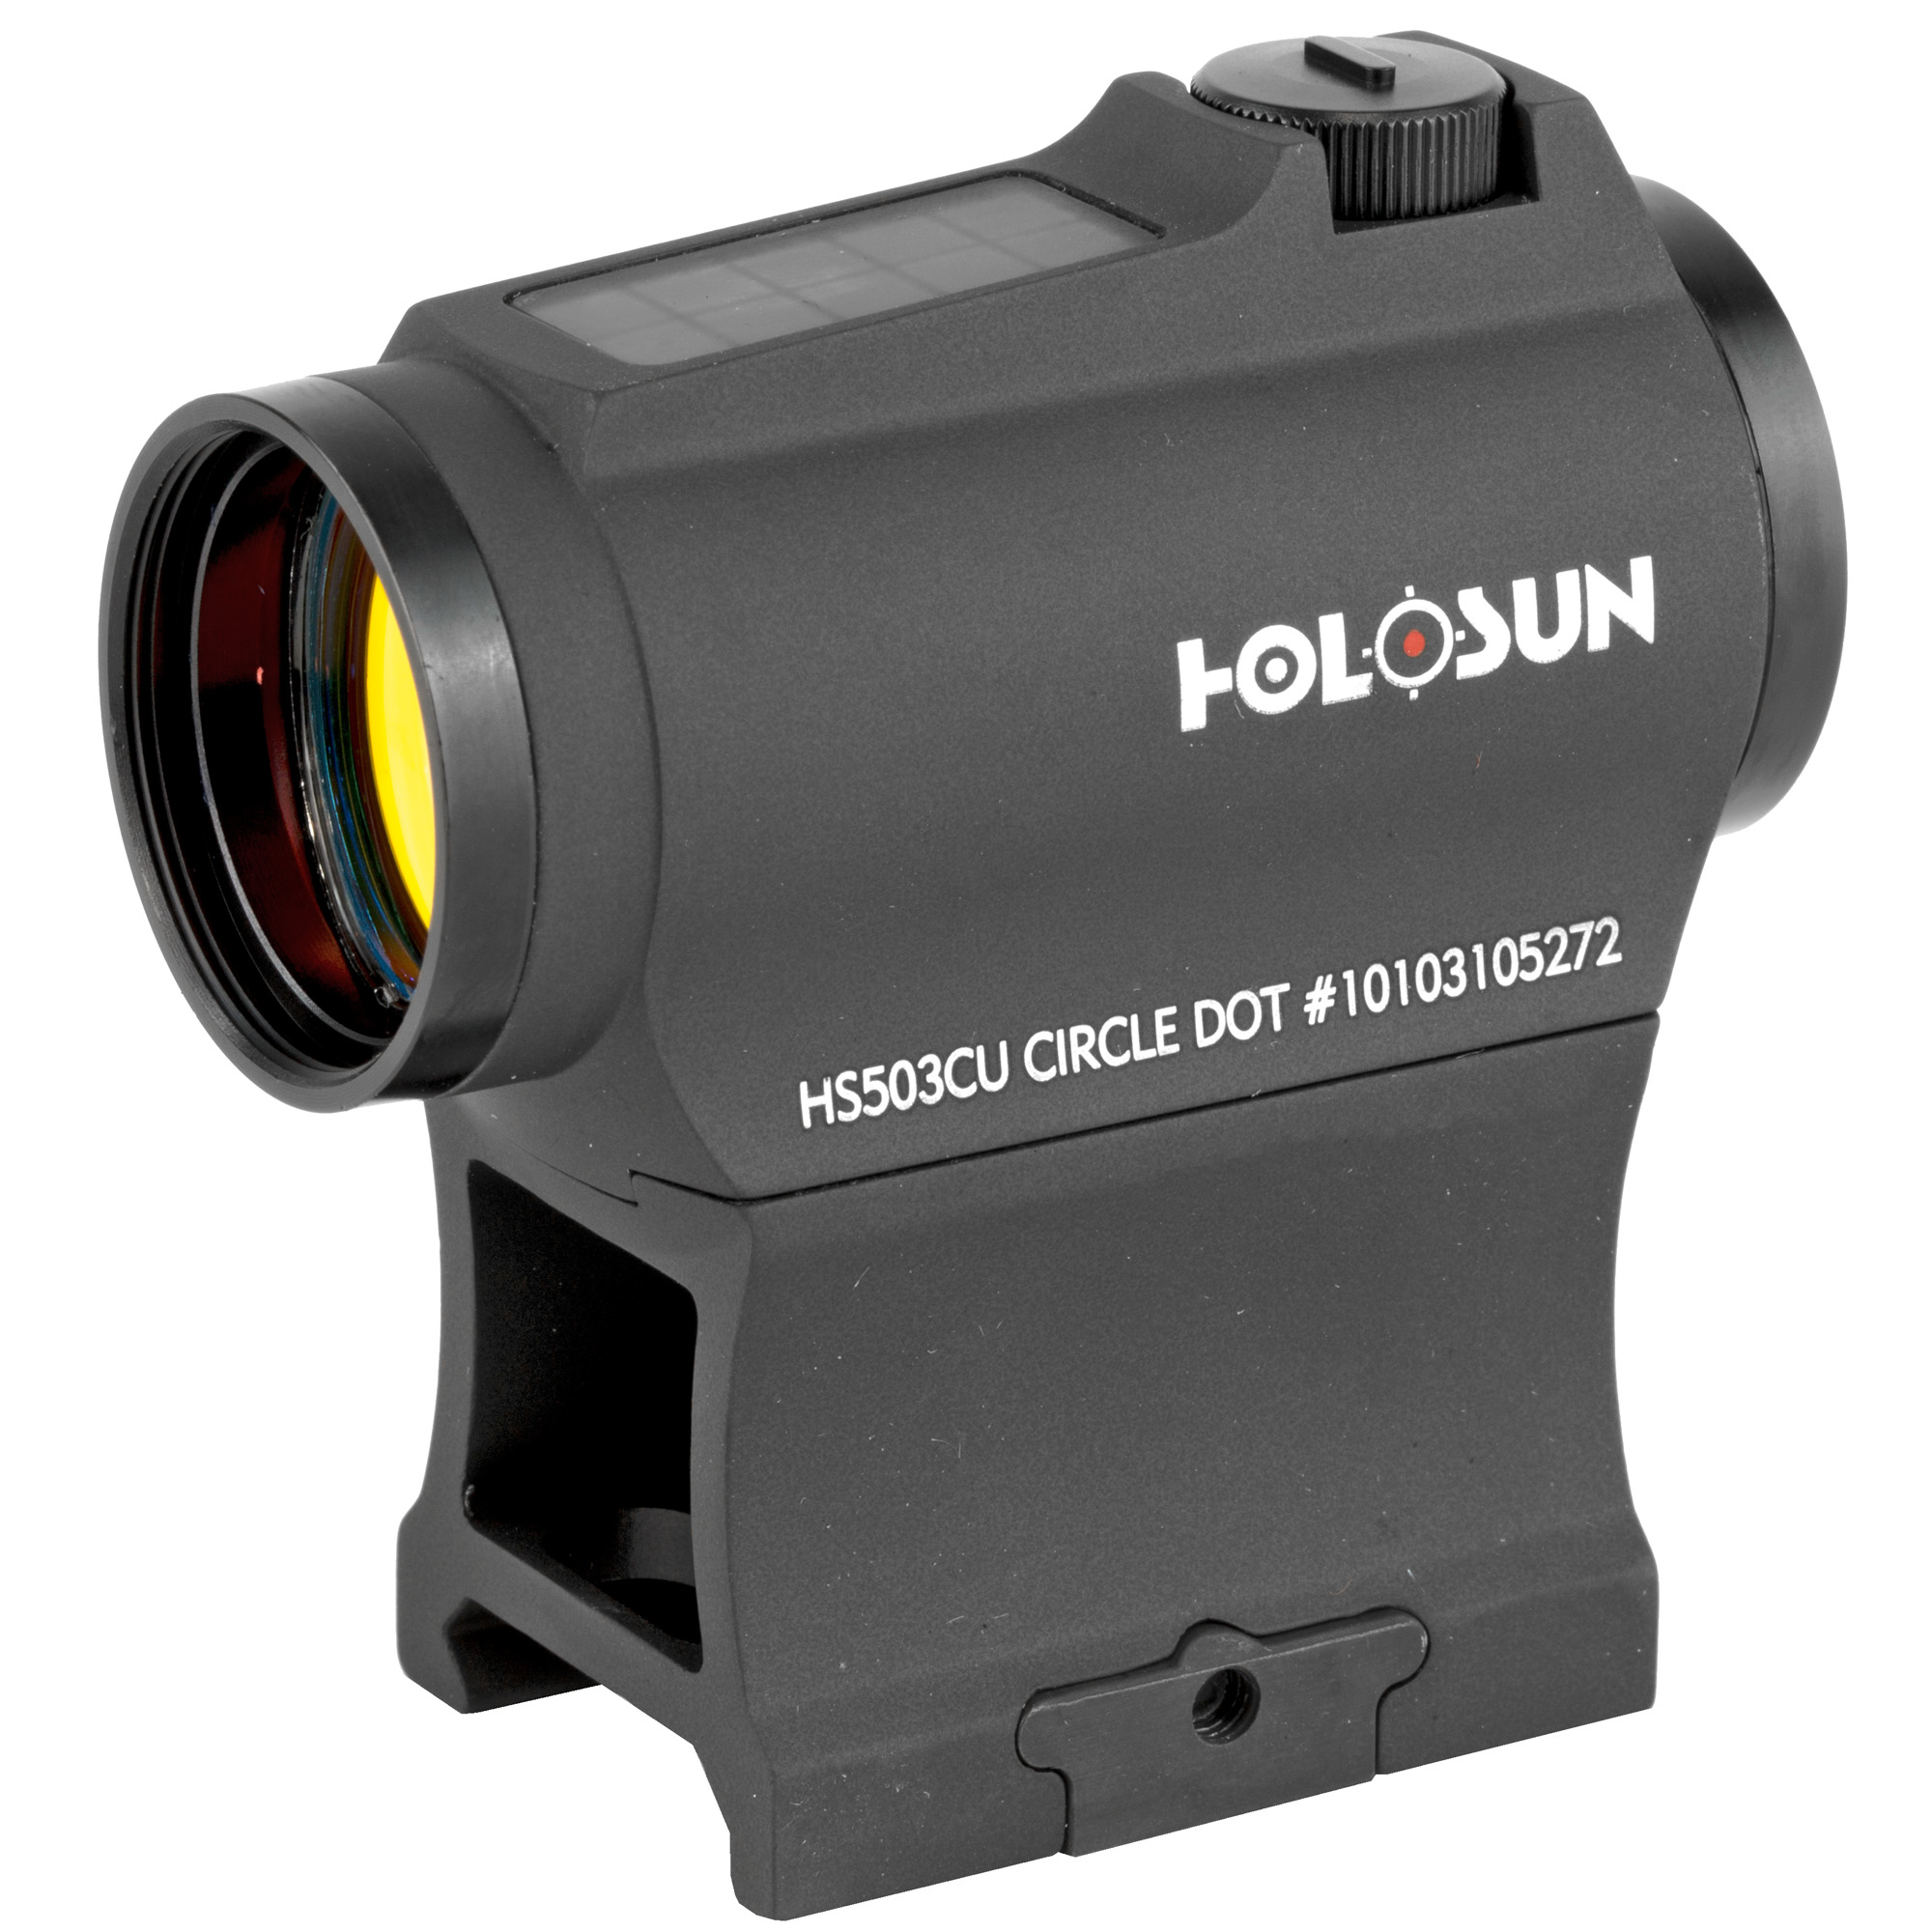 """The HS503CU is a new micro red dot optic equipped with a 65 MOA circle dot reticle with the option of switching to a 2MOA dot only. Holosun's highly efficient light emitting diodes and solar panels allow Holosun solar optics to run without a battery in many lighting conditions. Additionally"""" the back-up battery lasts up to 5-years on the dot and up to 2 years on the circle dot. The """"U"""" signifies a housing design that shrouds the windage and elevation turrets on two sides."""